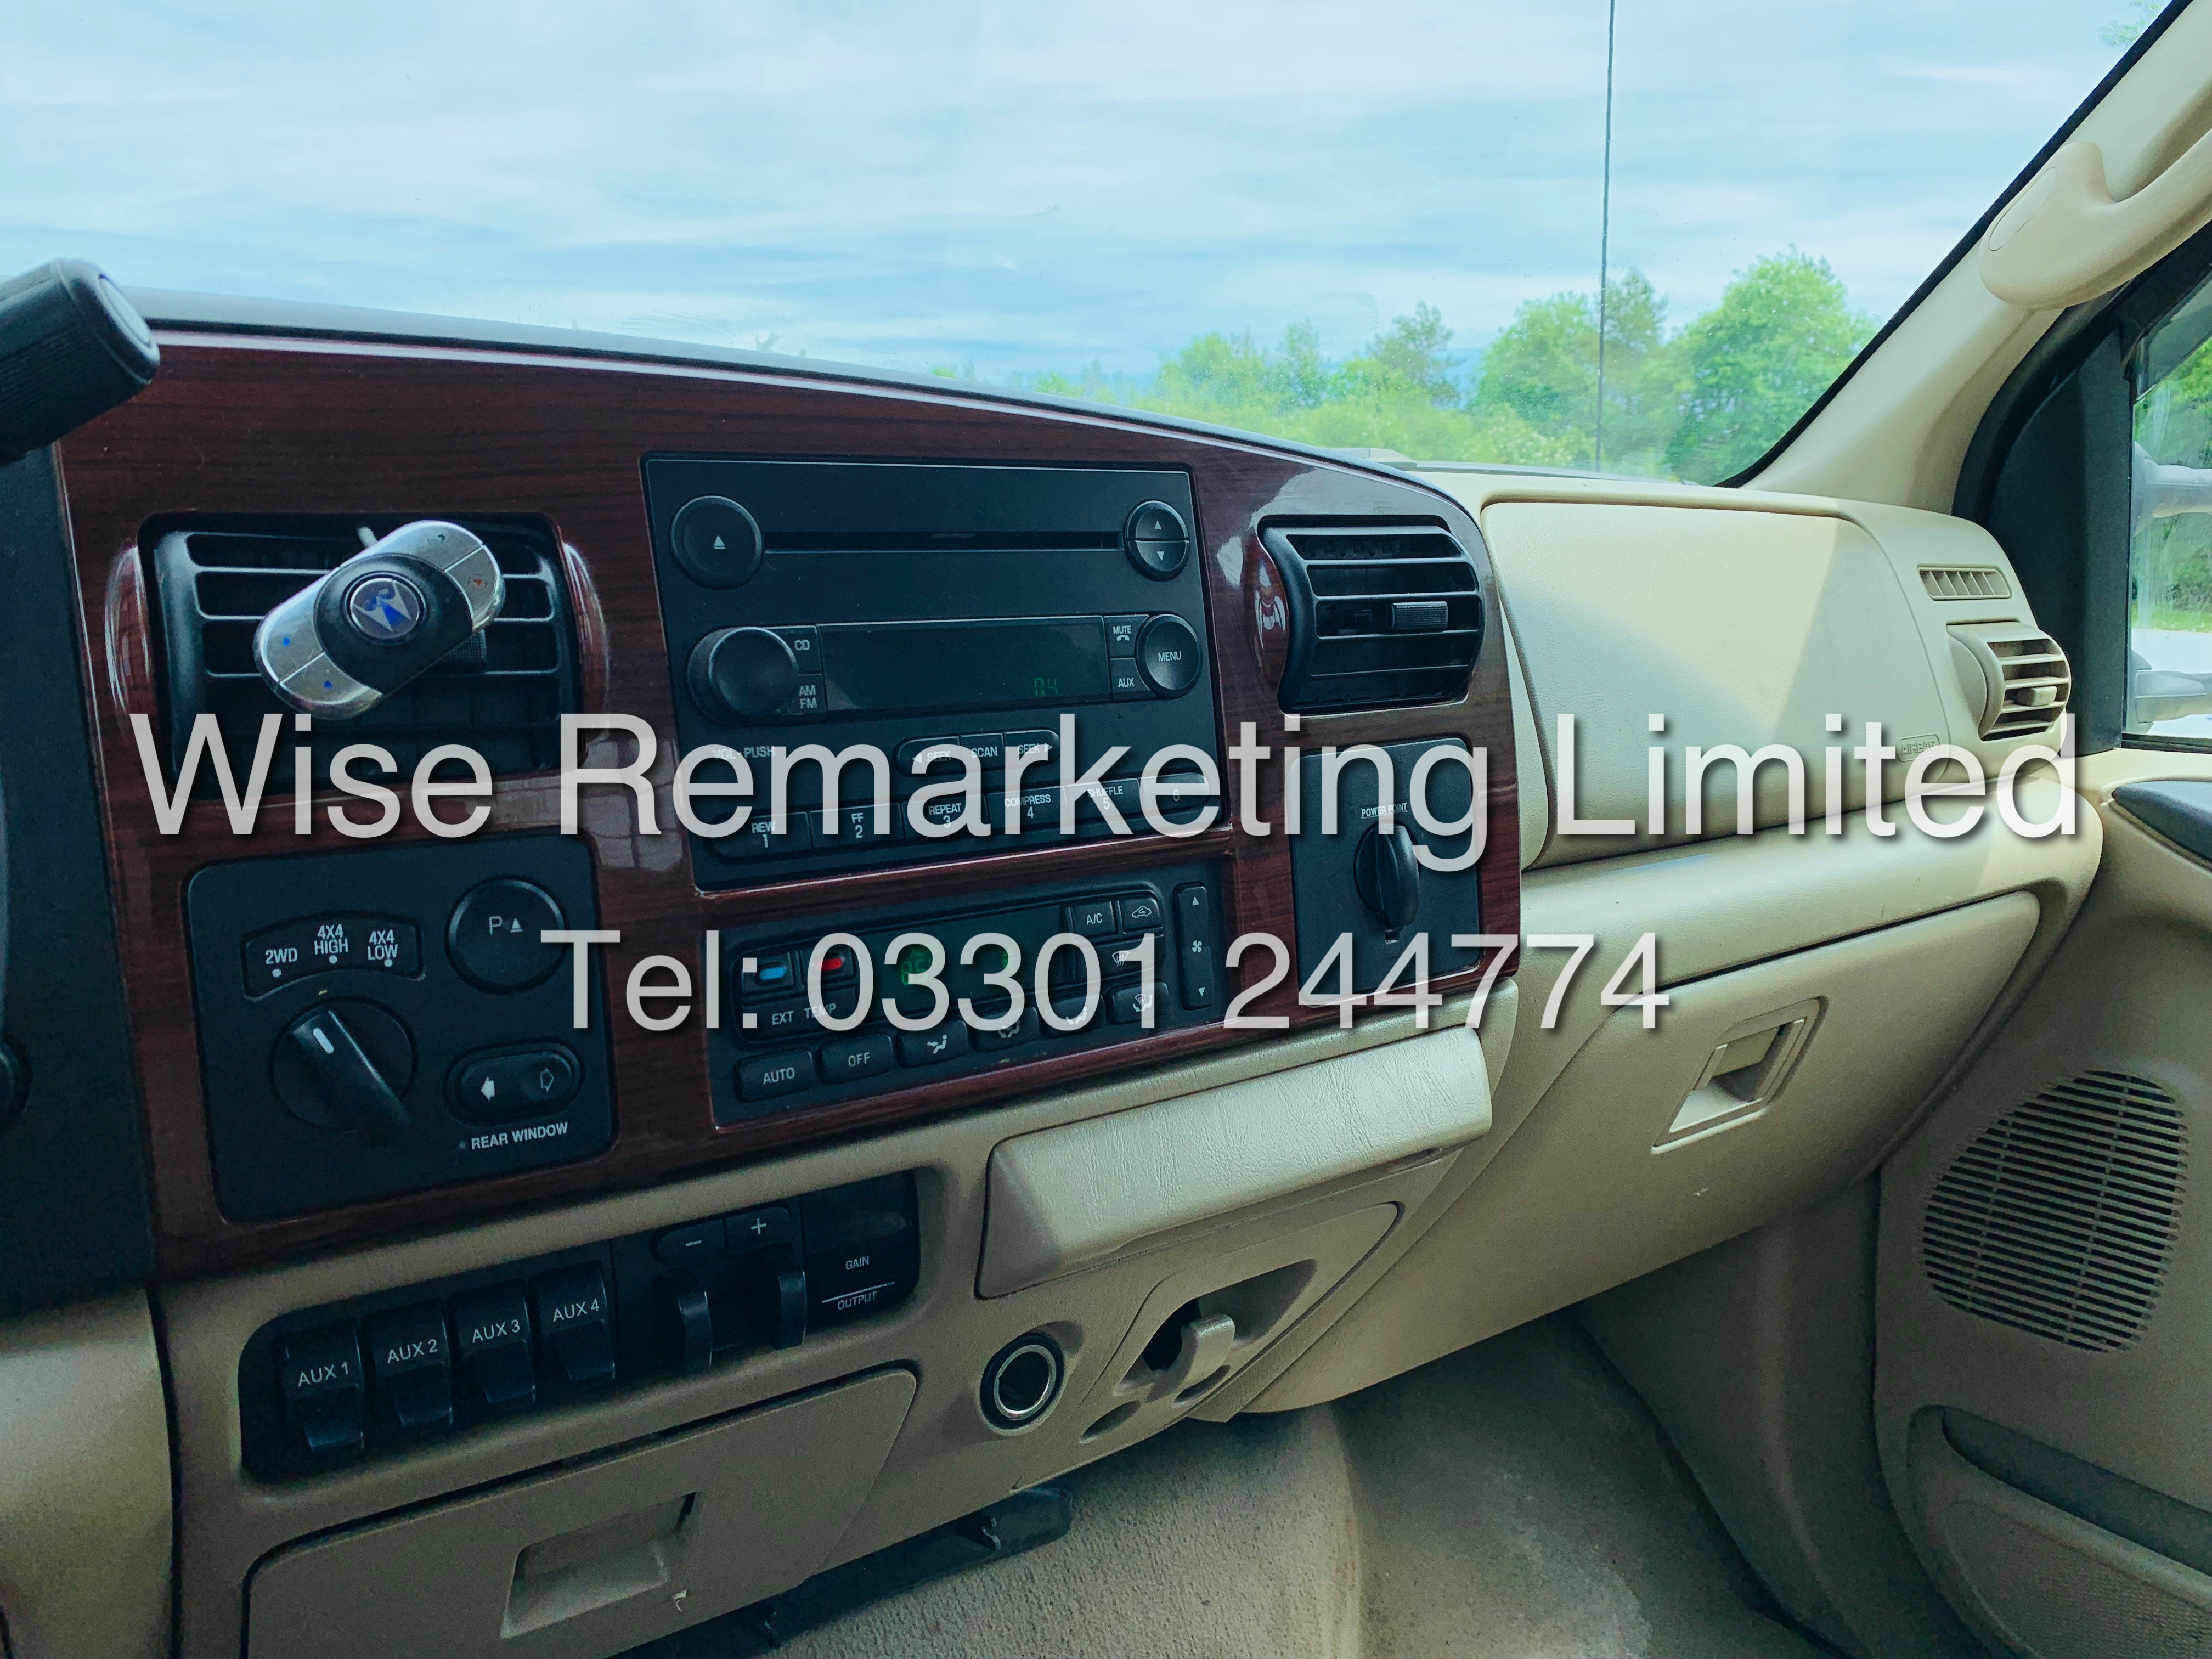 FORD F-250 6.0L V8**DIESEL**2007**4X4*LARIAT SPEC**DOUBLE-CAB**ULTRA RARE**FRESH IMPORT** - Image 16 of 18